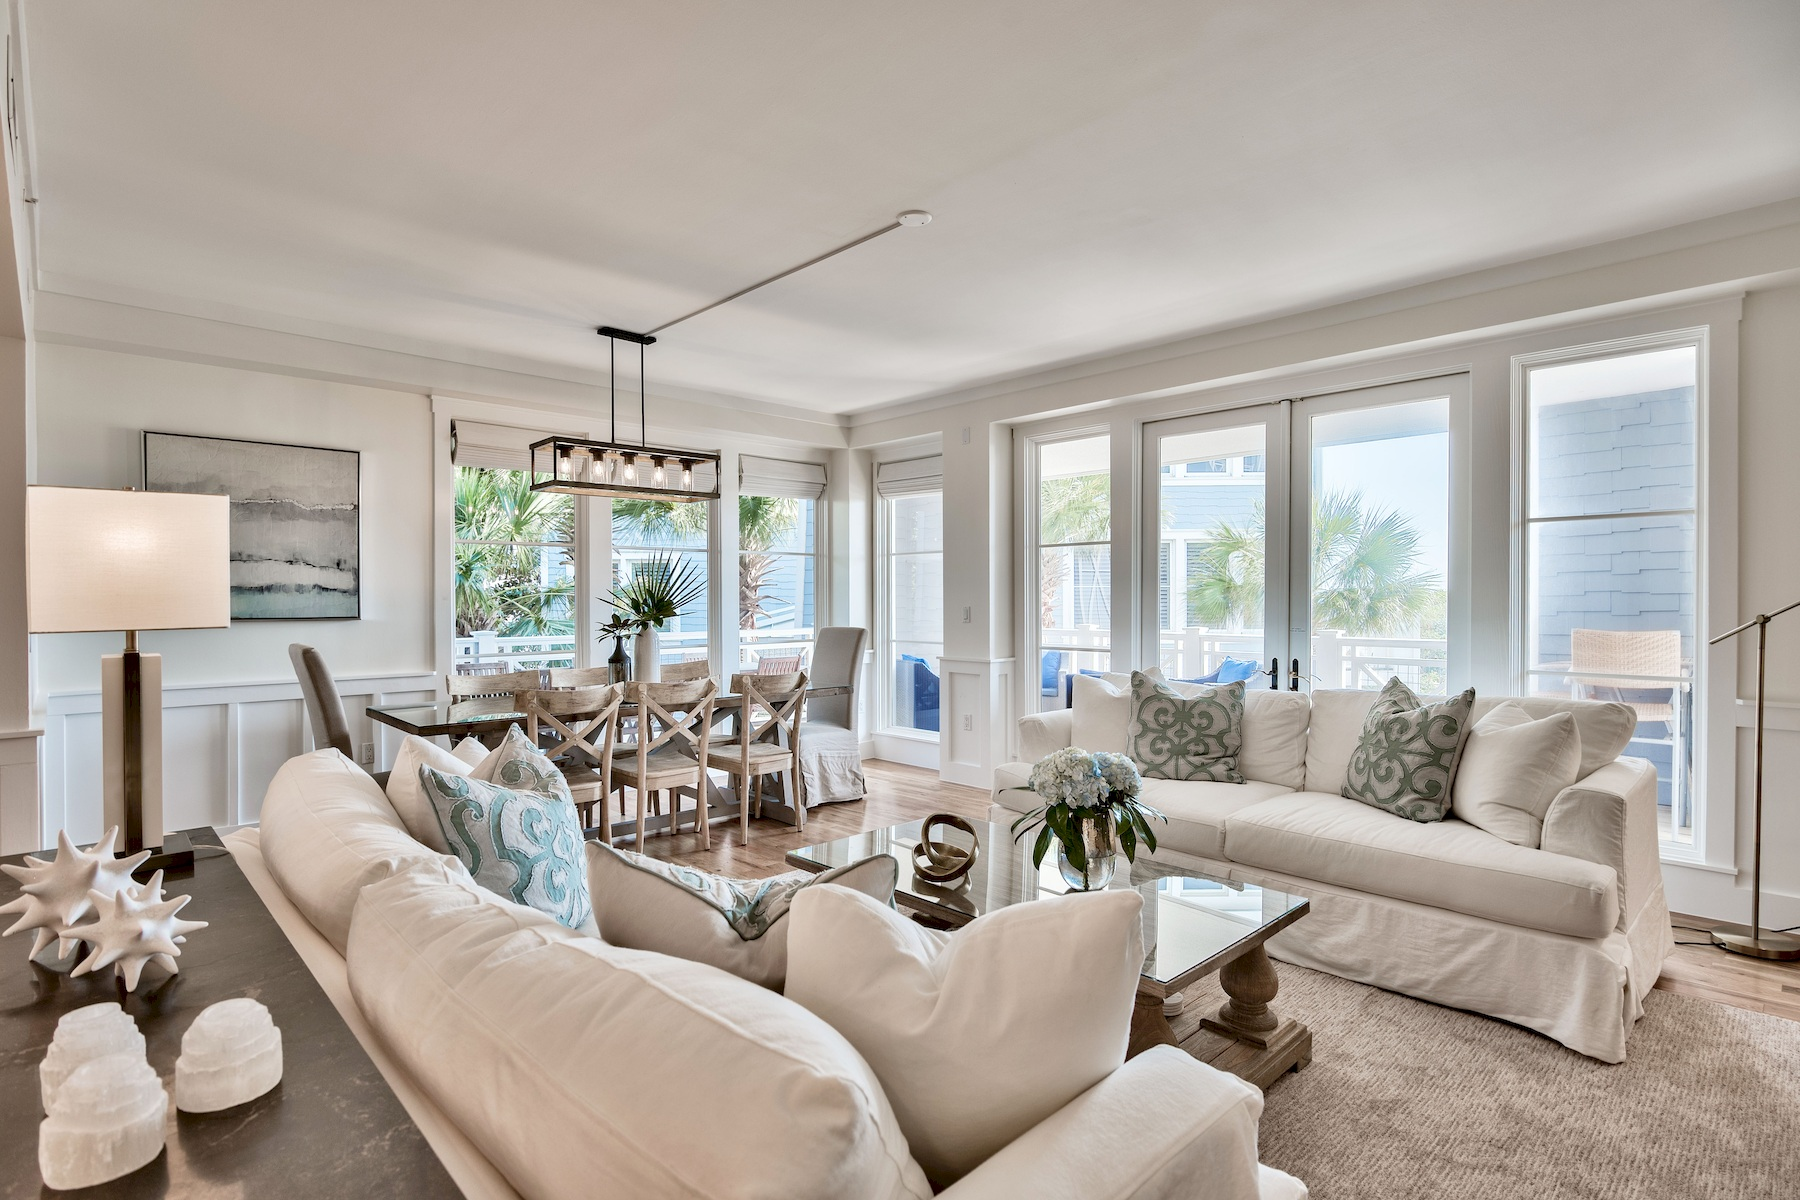 Condominiums for Sale at Rarely Available 4 Bedroom The Crossings Condo Lives Like Home 337 S Bridge Lane B101 Watersound, Florida 32461 United States